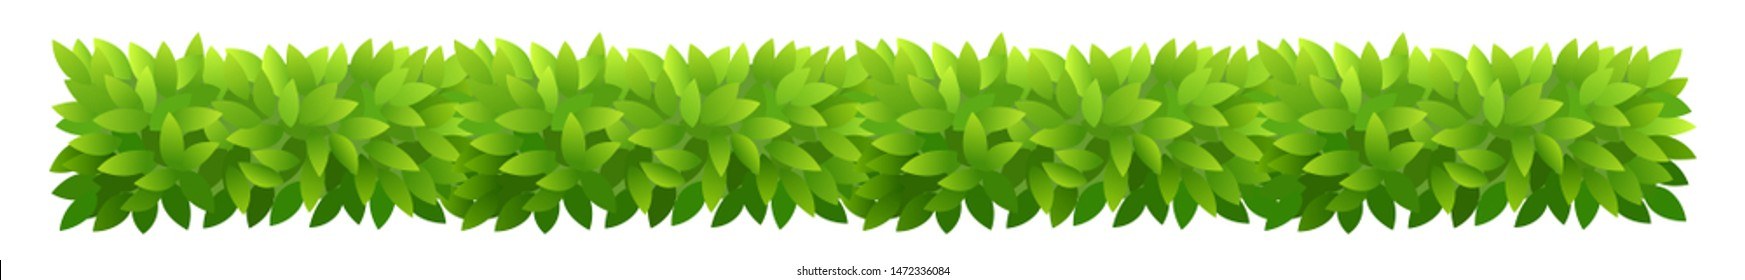 Foliage bush of green leaves. Horizontal rectangular long banner. Green leaves texture. Thick thickets shrubs. For spring and summer design.